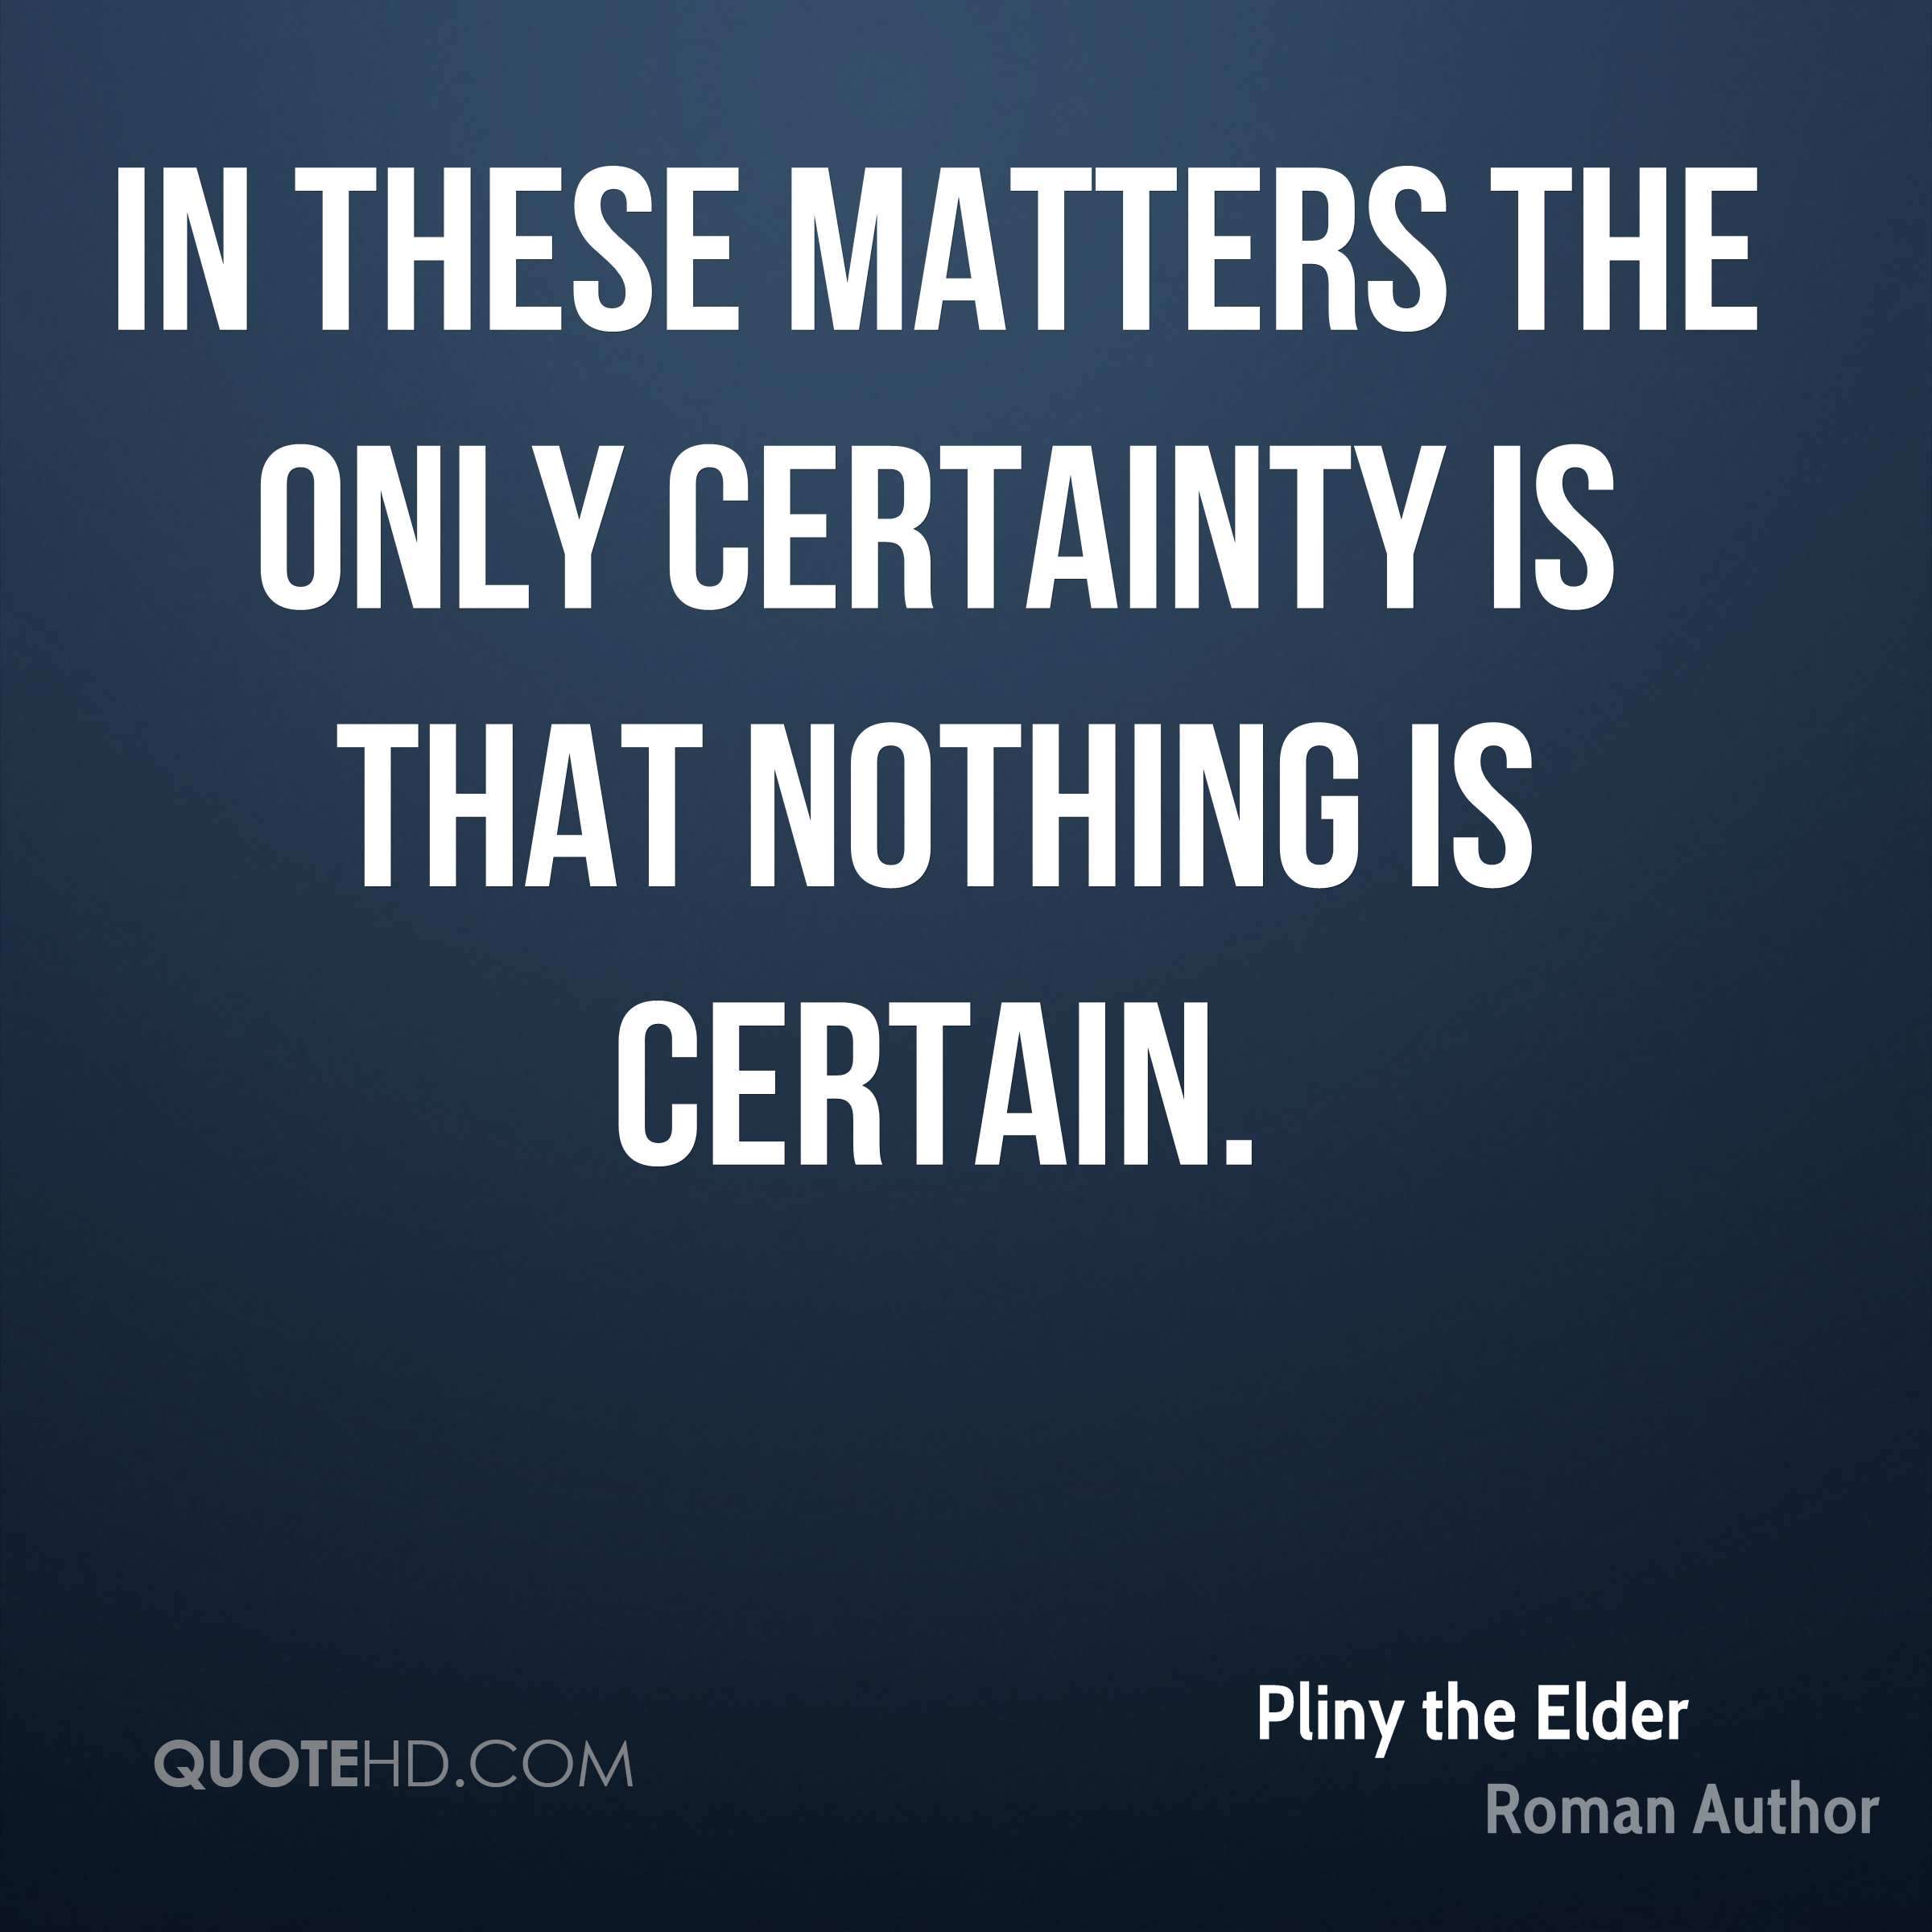 In these matters the only certainty is that nothing is certain.